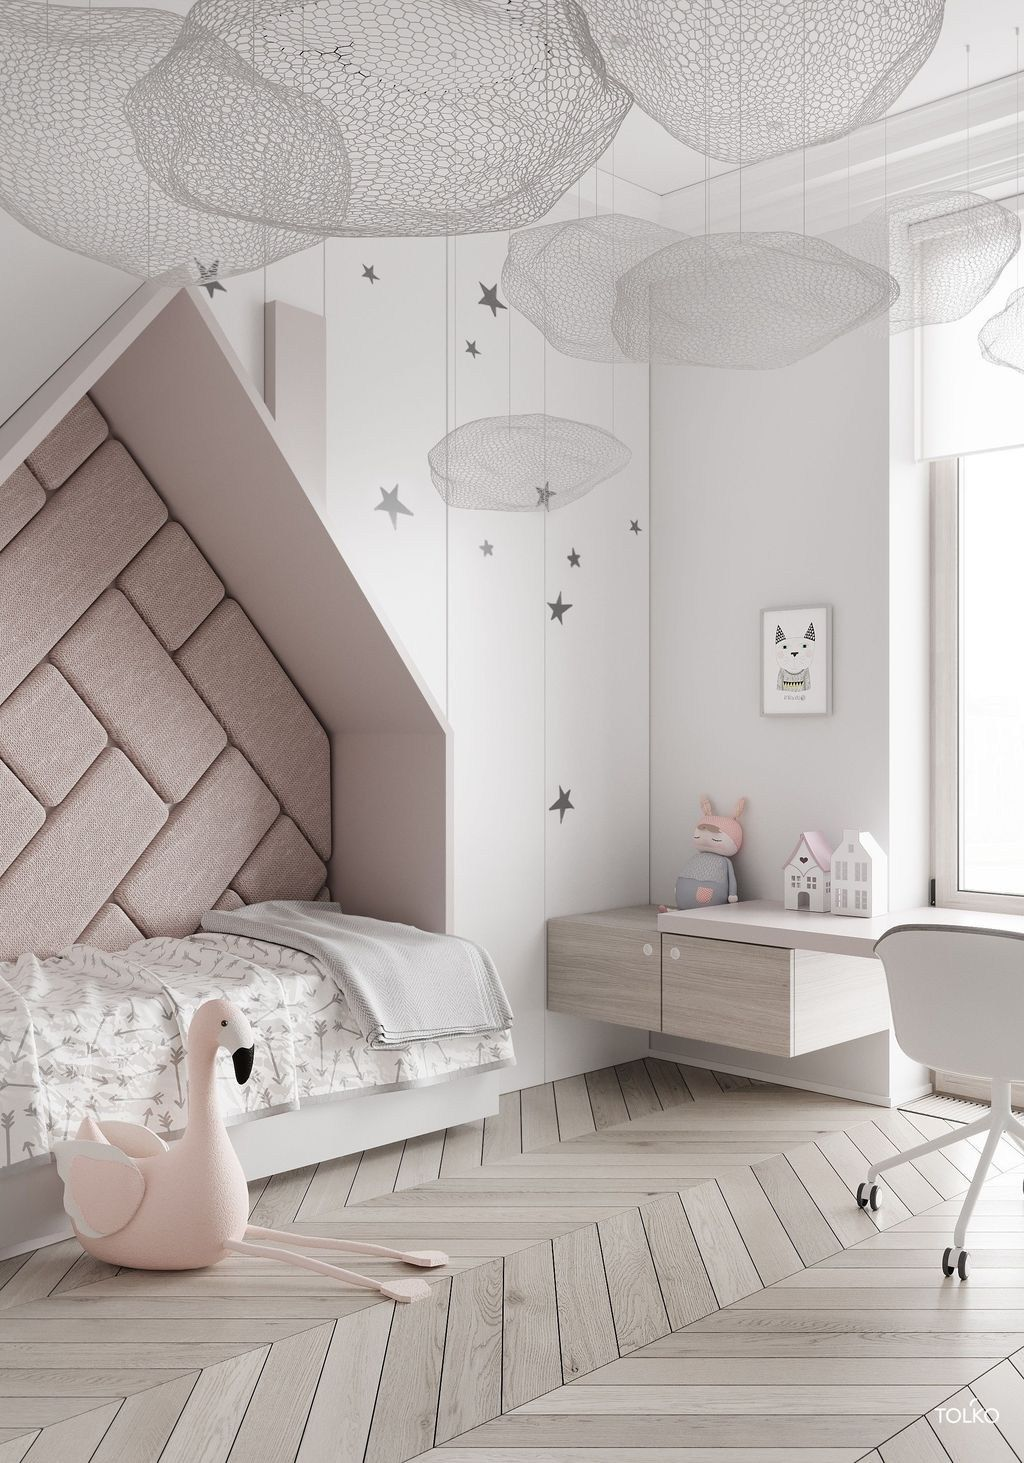 Modern Kids Room Designs For Your Modern Home05 Child Bedroom Layout Cool Kids Bedrooms Modern Kids Room Design